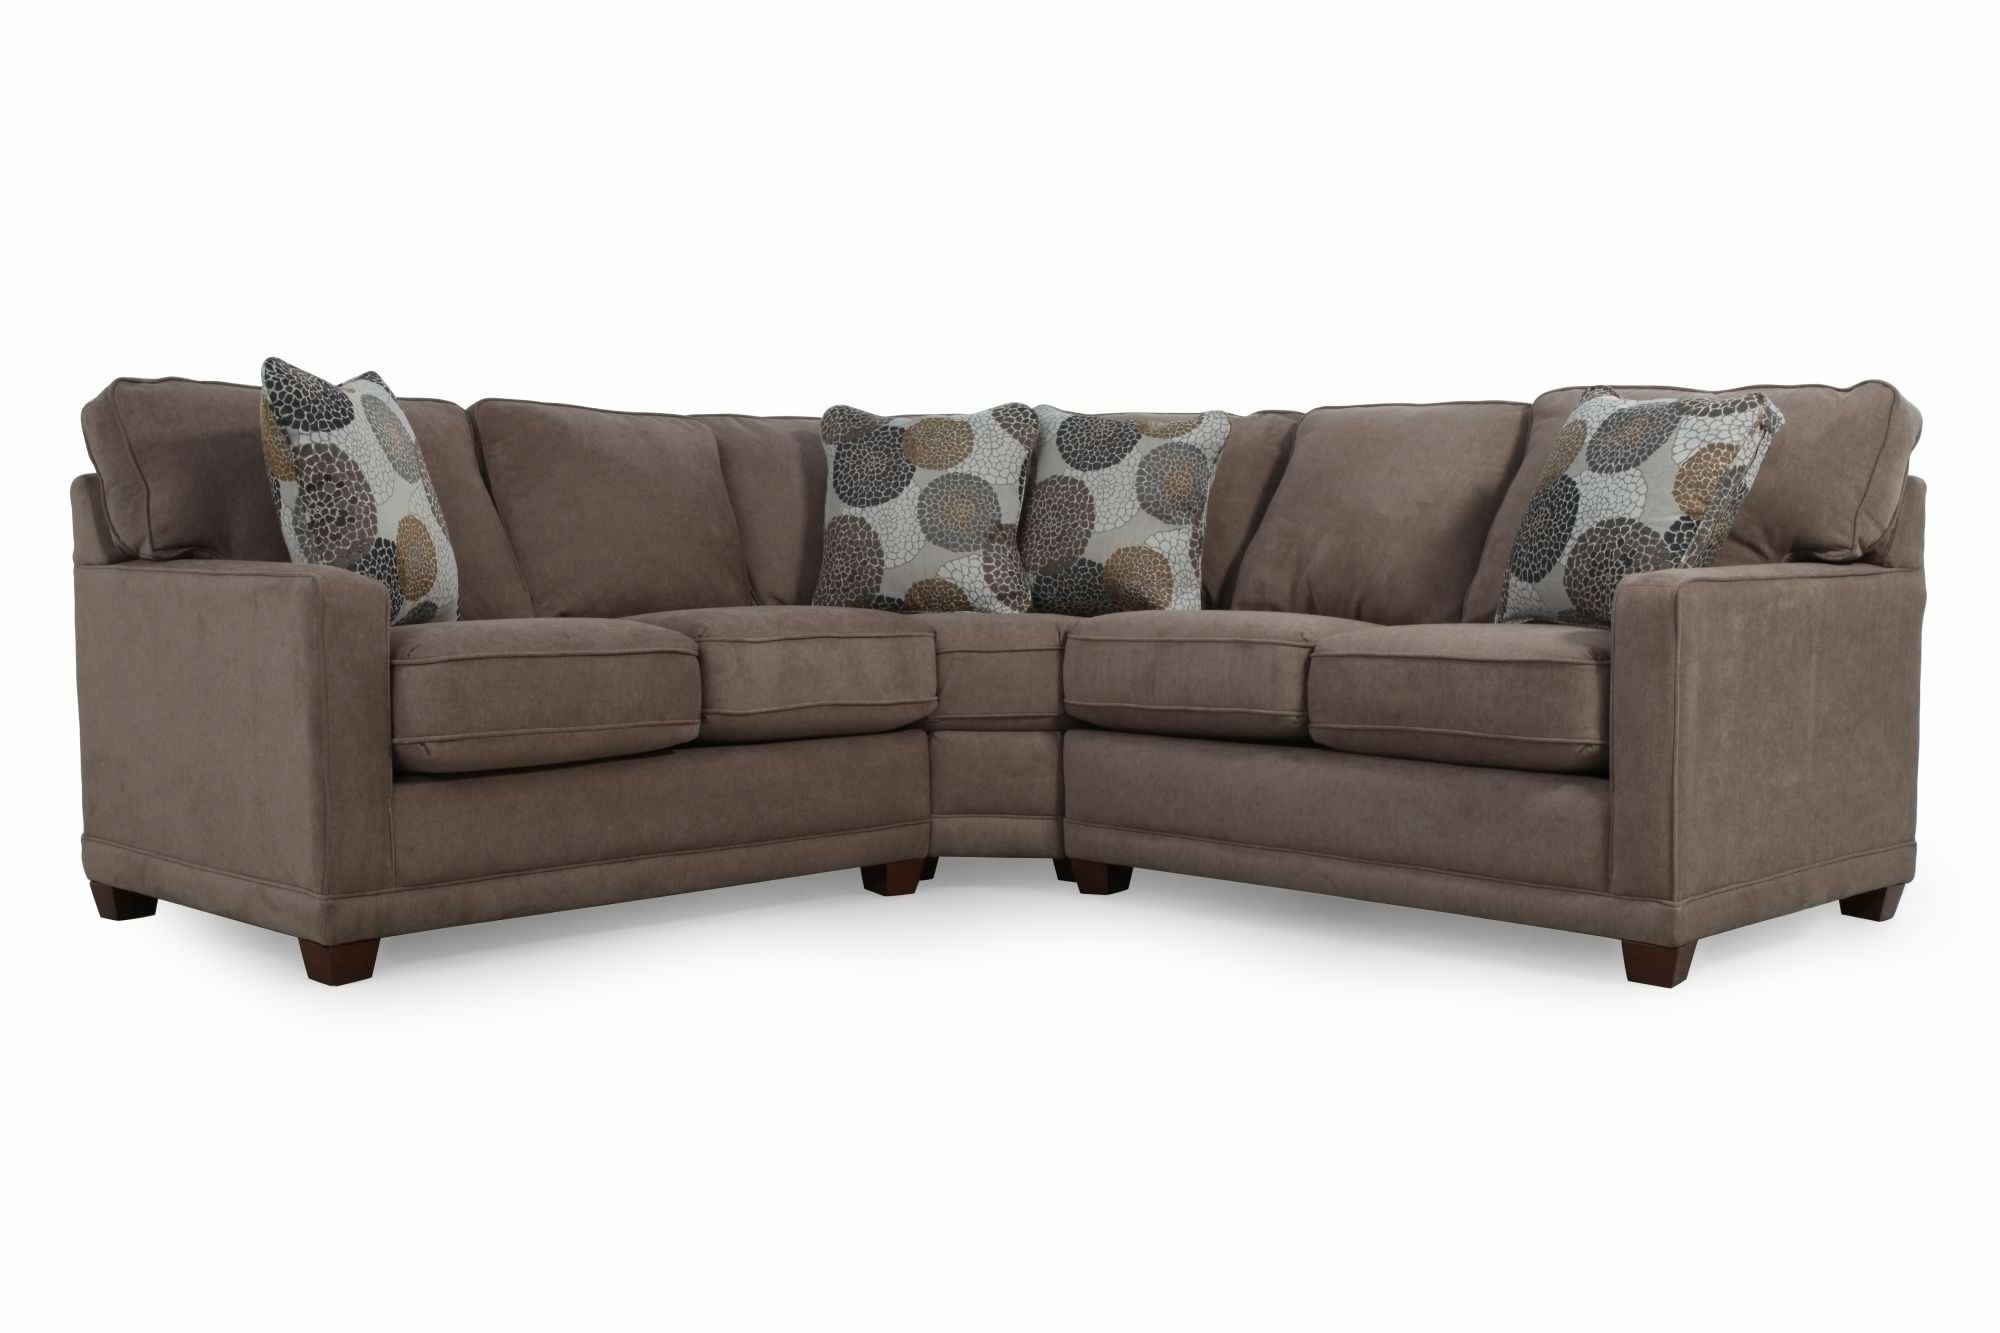 2018 Lazy Boy Sectional Sofas For Sectional Sofa Design: Lazy Boy Sectional Sofa Sale James (View 8 of 15)